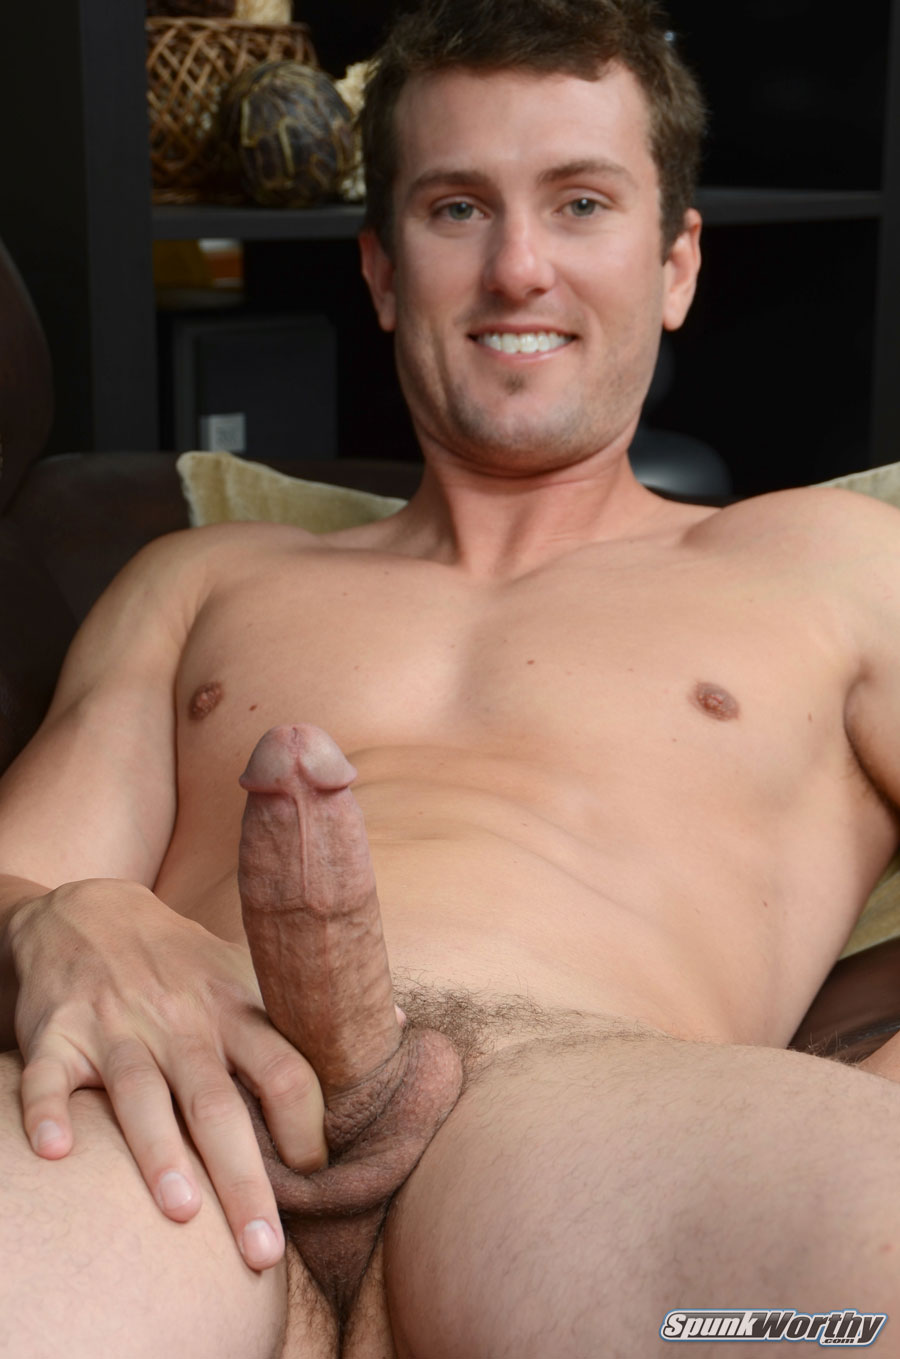 SpunkWorthy-Tommy-Straight-Guy-With-Big-Cock-Handjob-Amateur-Gay-Porn-14 Amateur Straight Surfer Gets His First Handjob From A Guy